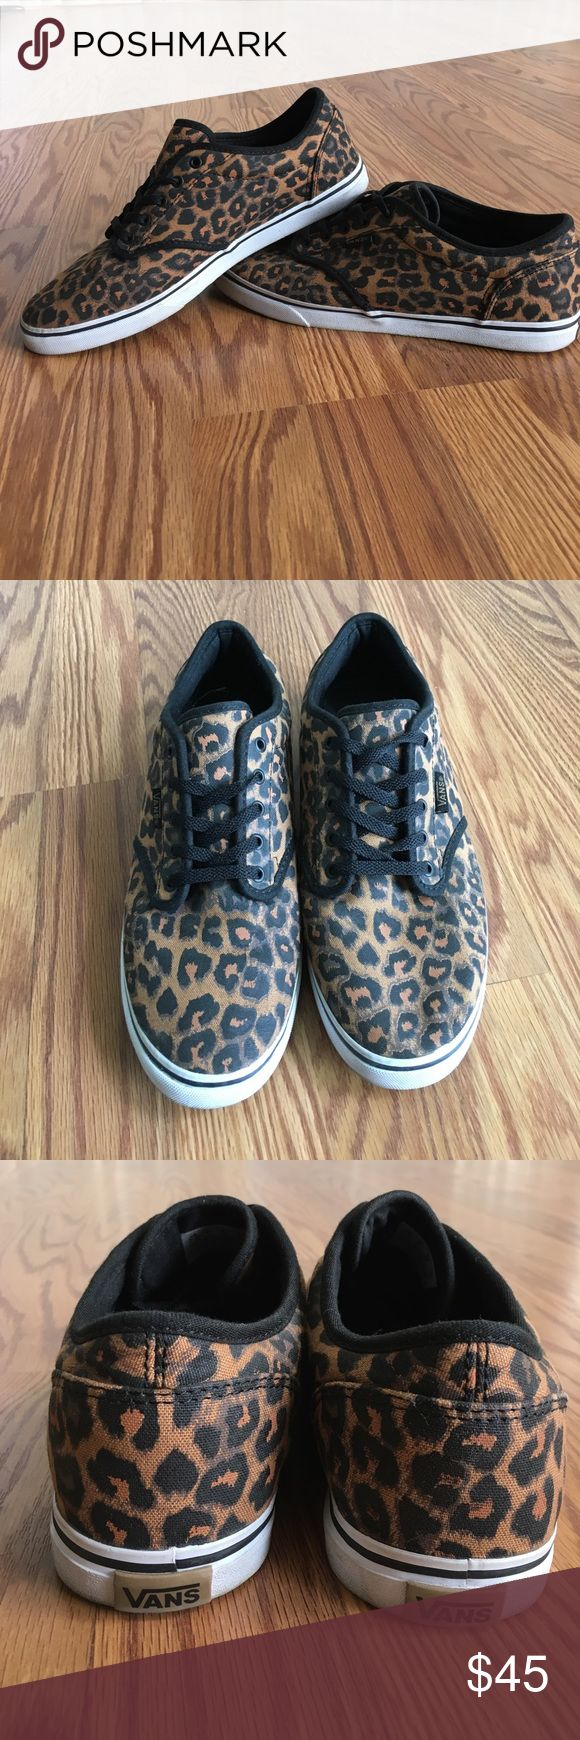 Gently worn 7.5 leopard VANS Wear them with a dress, some shorts, jeans or leggings! VANS can be worn with anything! These are gently worn and have no flaws. ⚫️🐆👟🐆⚫️ Feel free to make an offer! Vans Shoes Sneakers